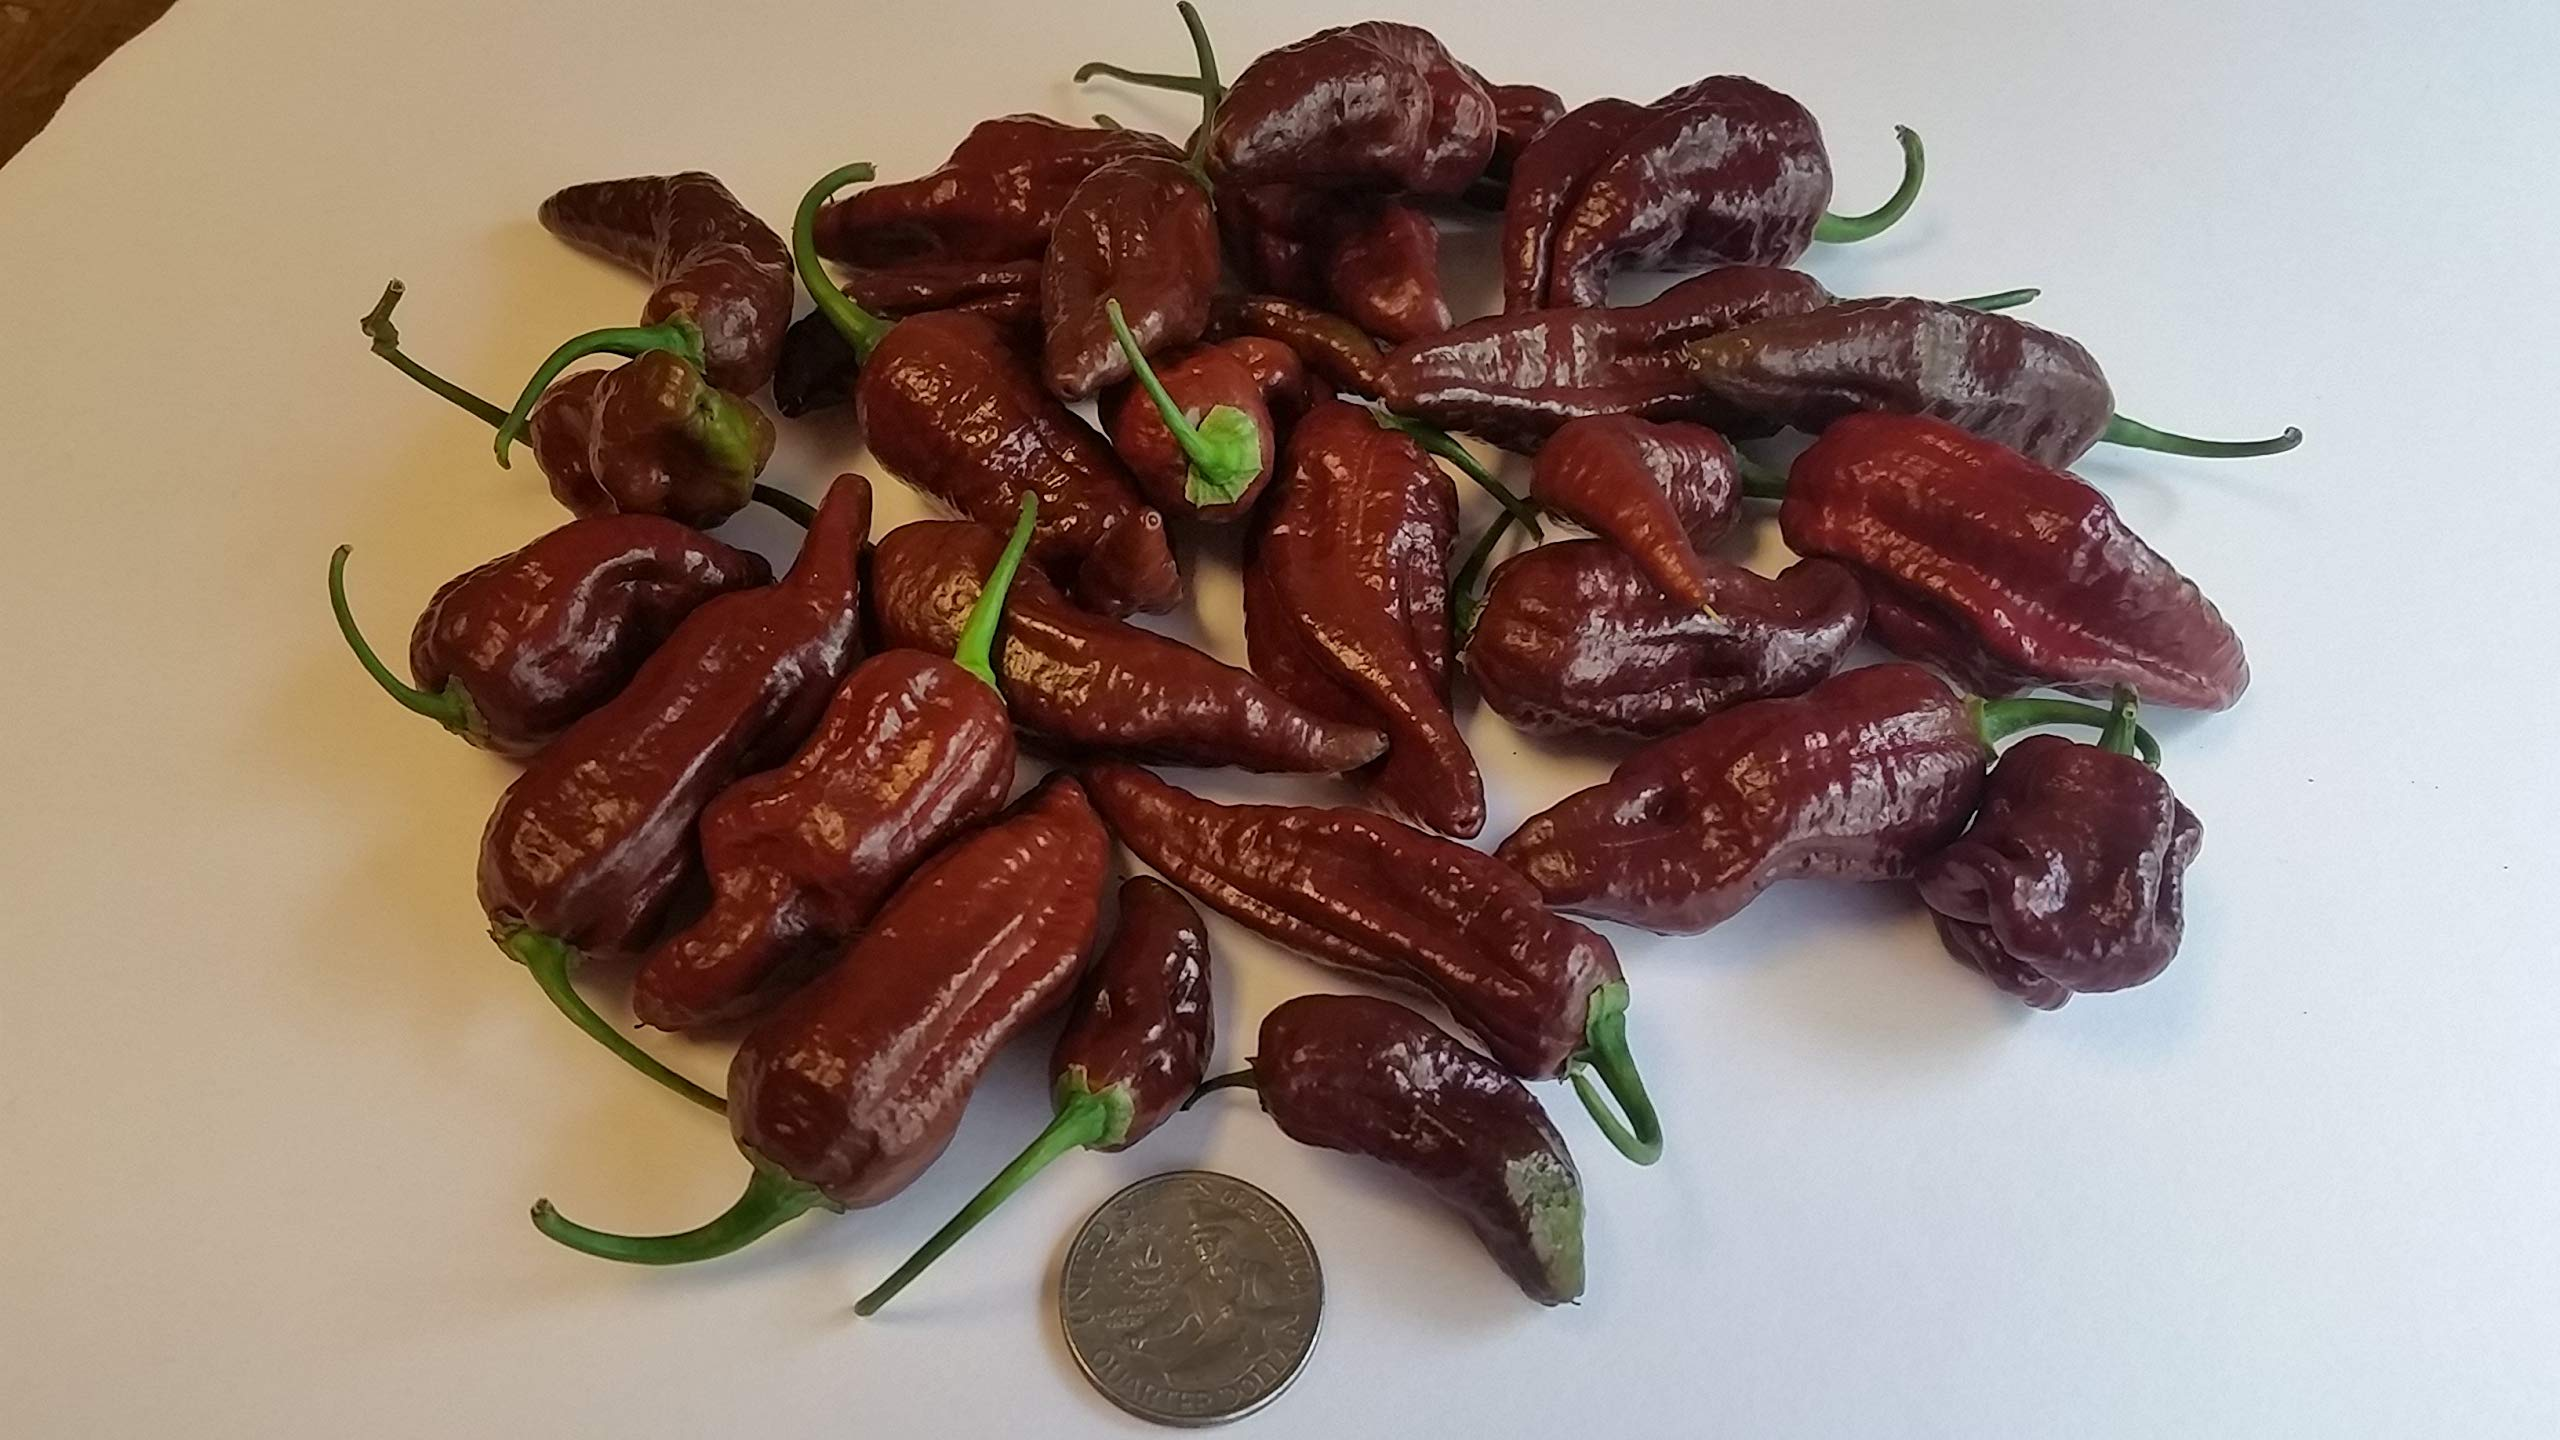 Fresh Super Hot Peppers - Mixed Box: All Chocolate/Brown Colored Peppers